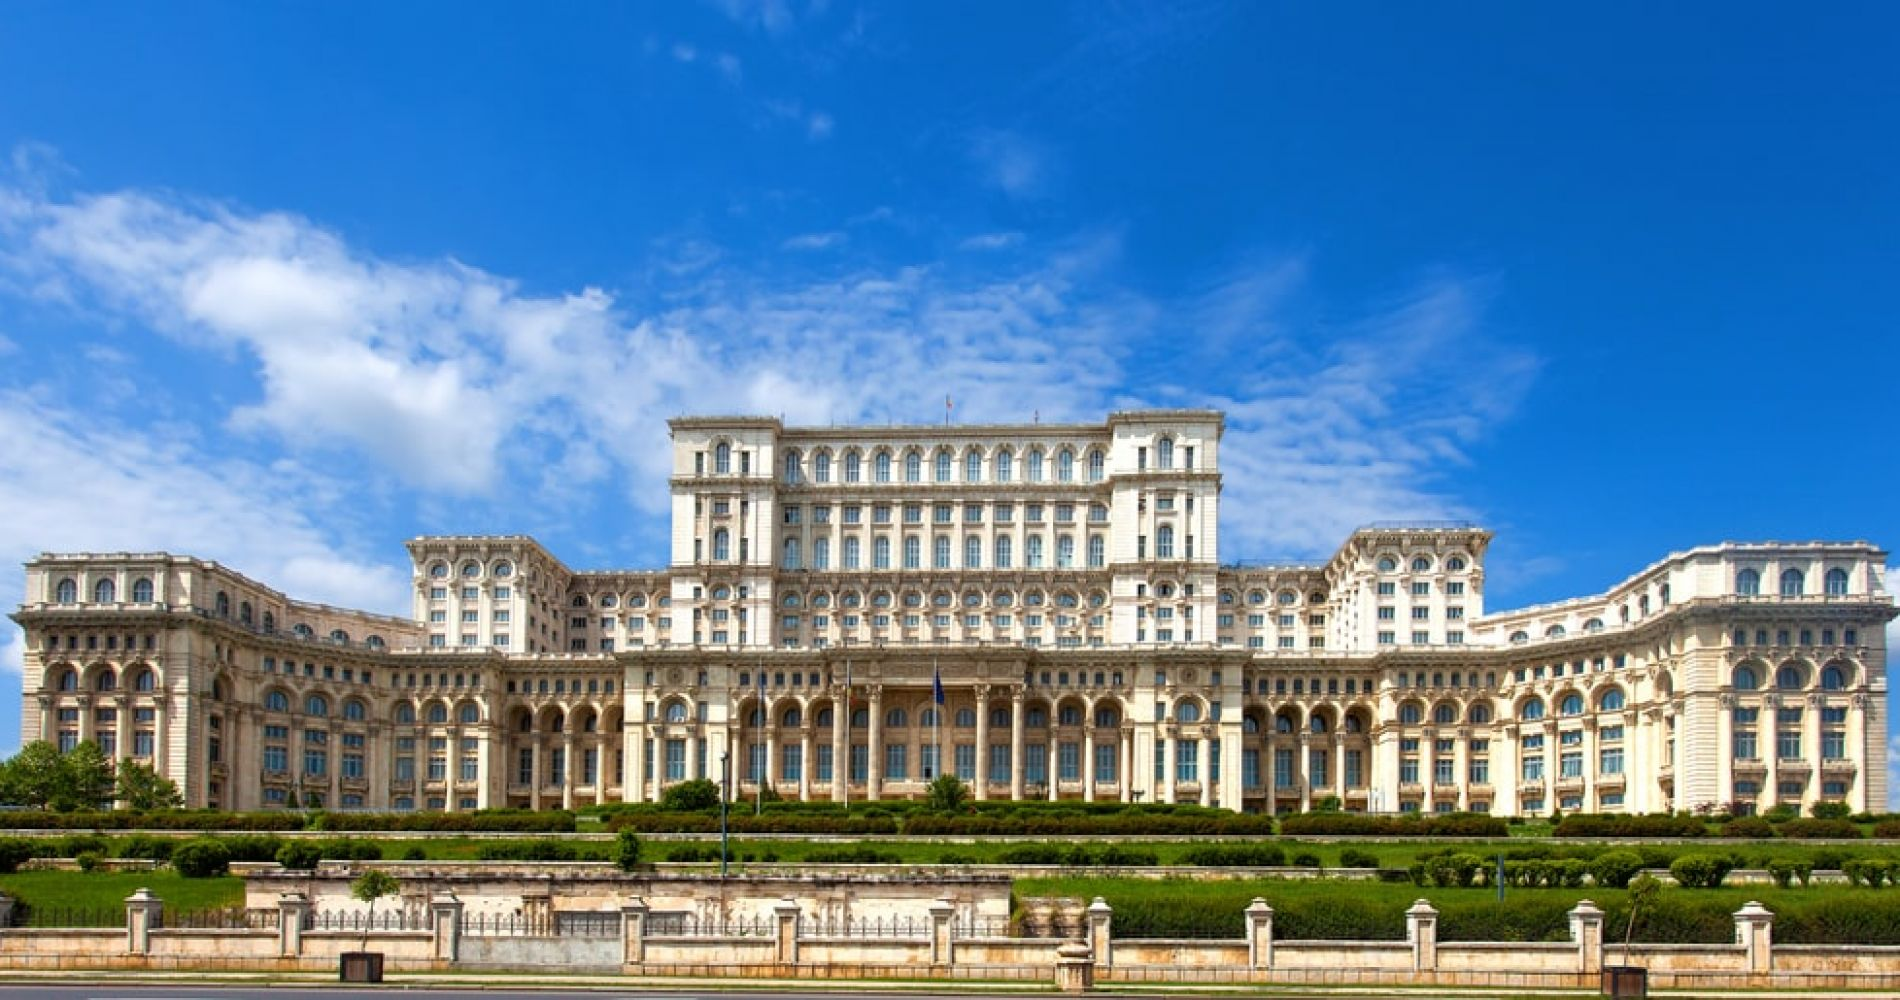 See the Palace of the Parliament in Bucharest